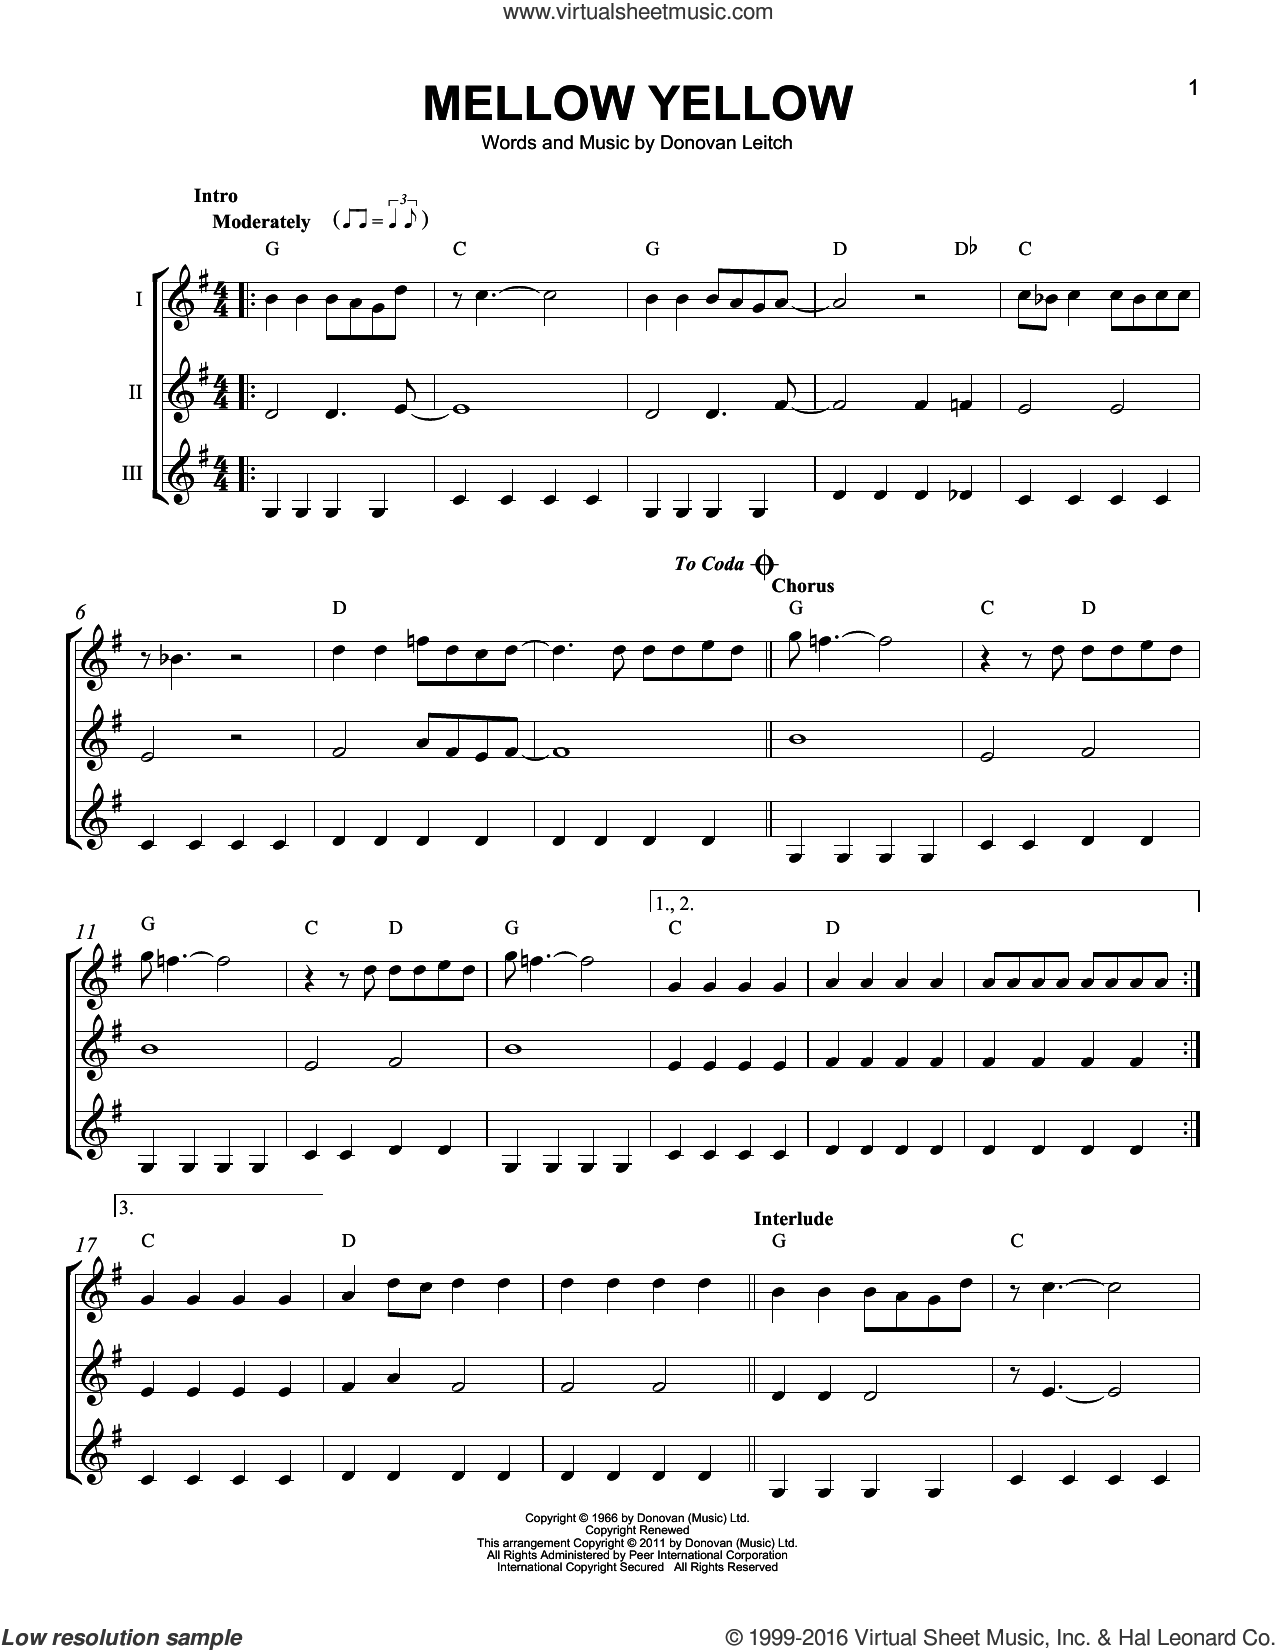 Mellow Yellow sheet music for guitar ensemble by Walter Donovan and Donovan Leitch, intermediate